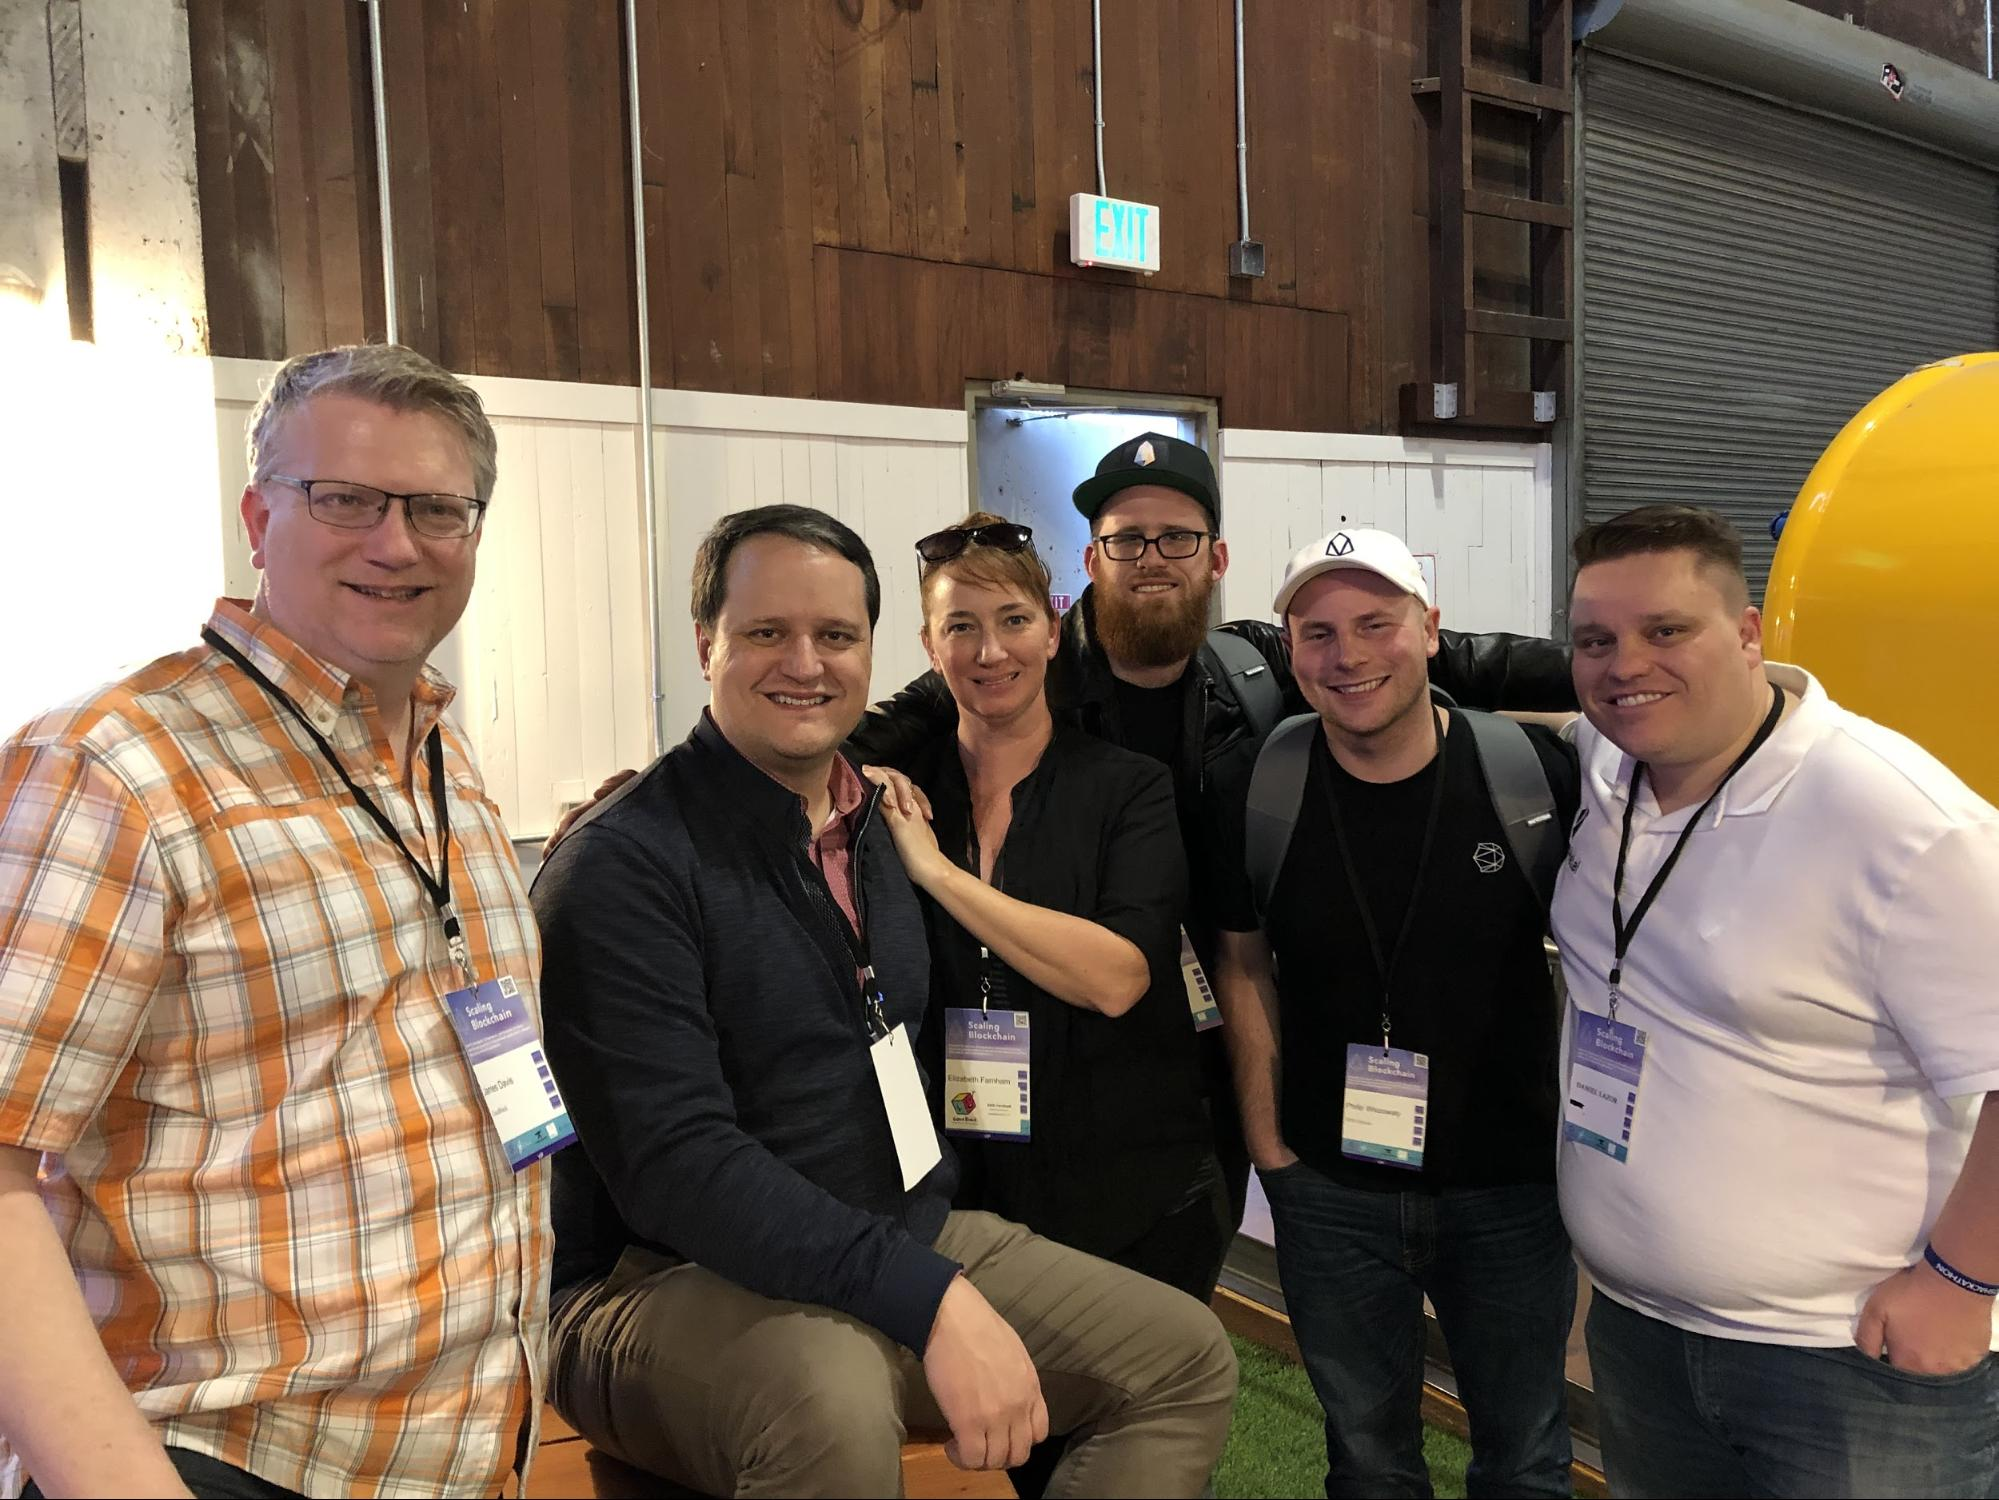 Telos team members at Scaling Blockchain conference in San Francisco.